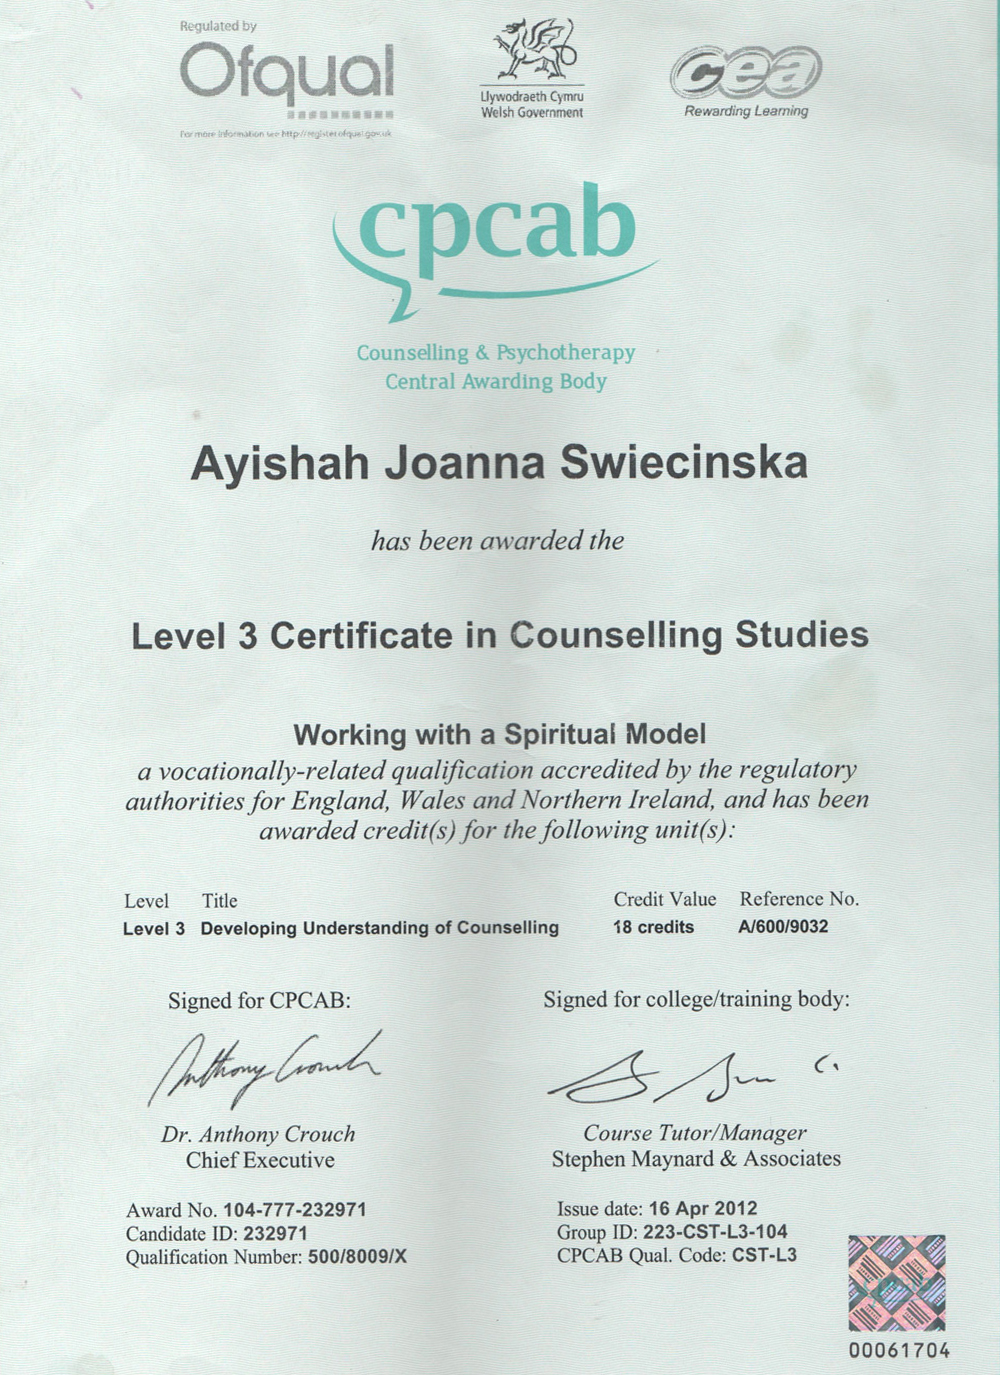 Lev 3 Counselling Studies